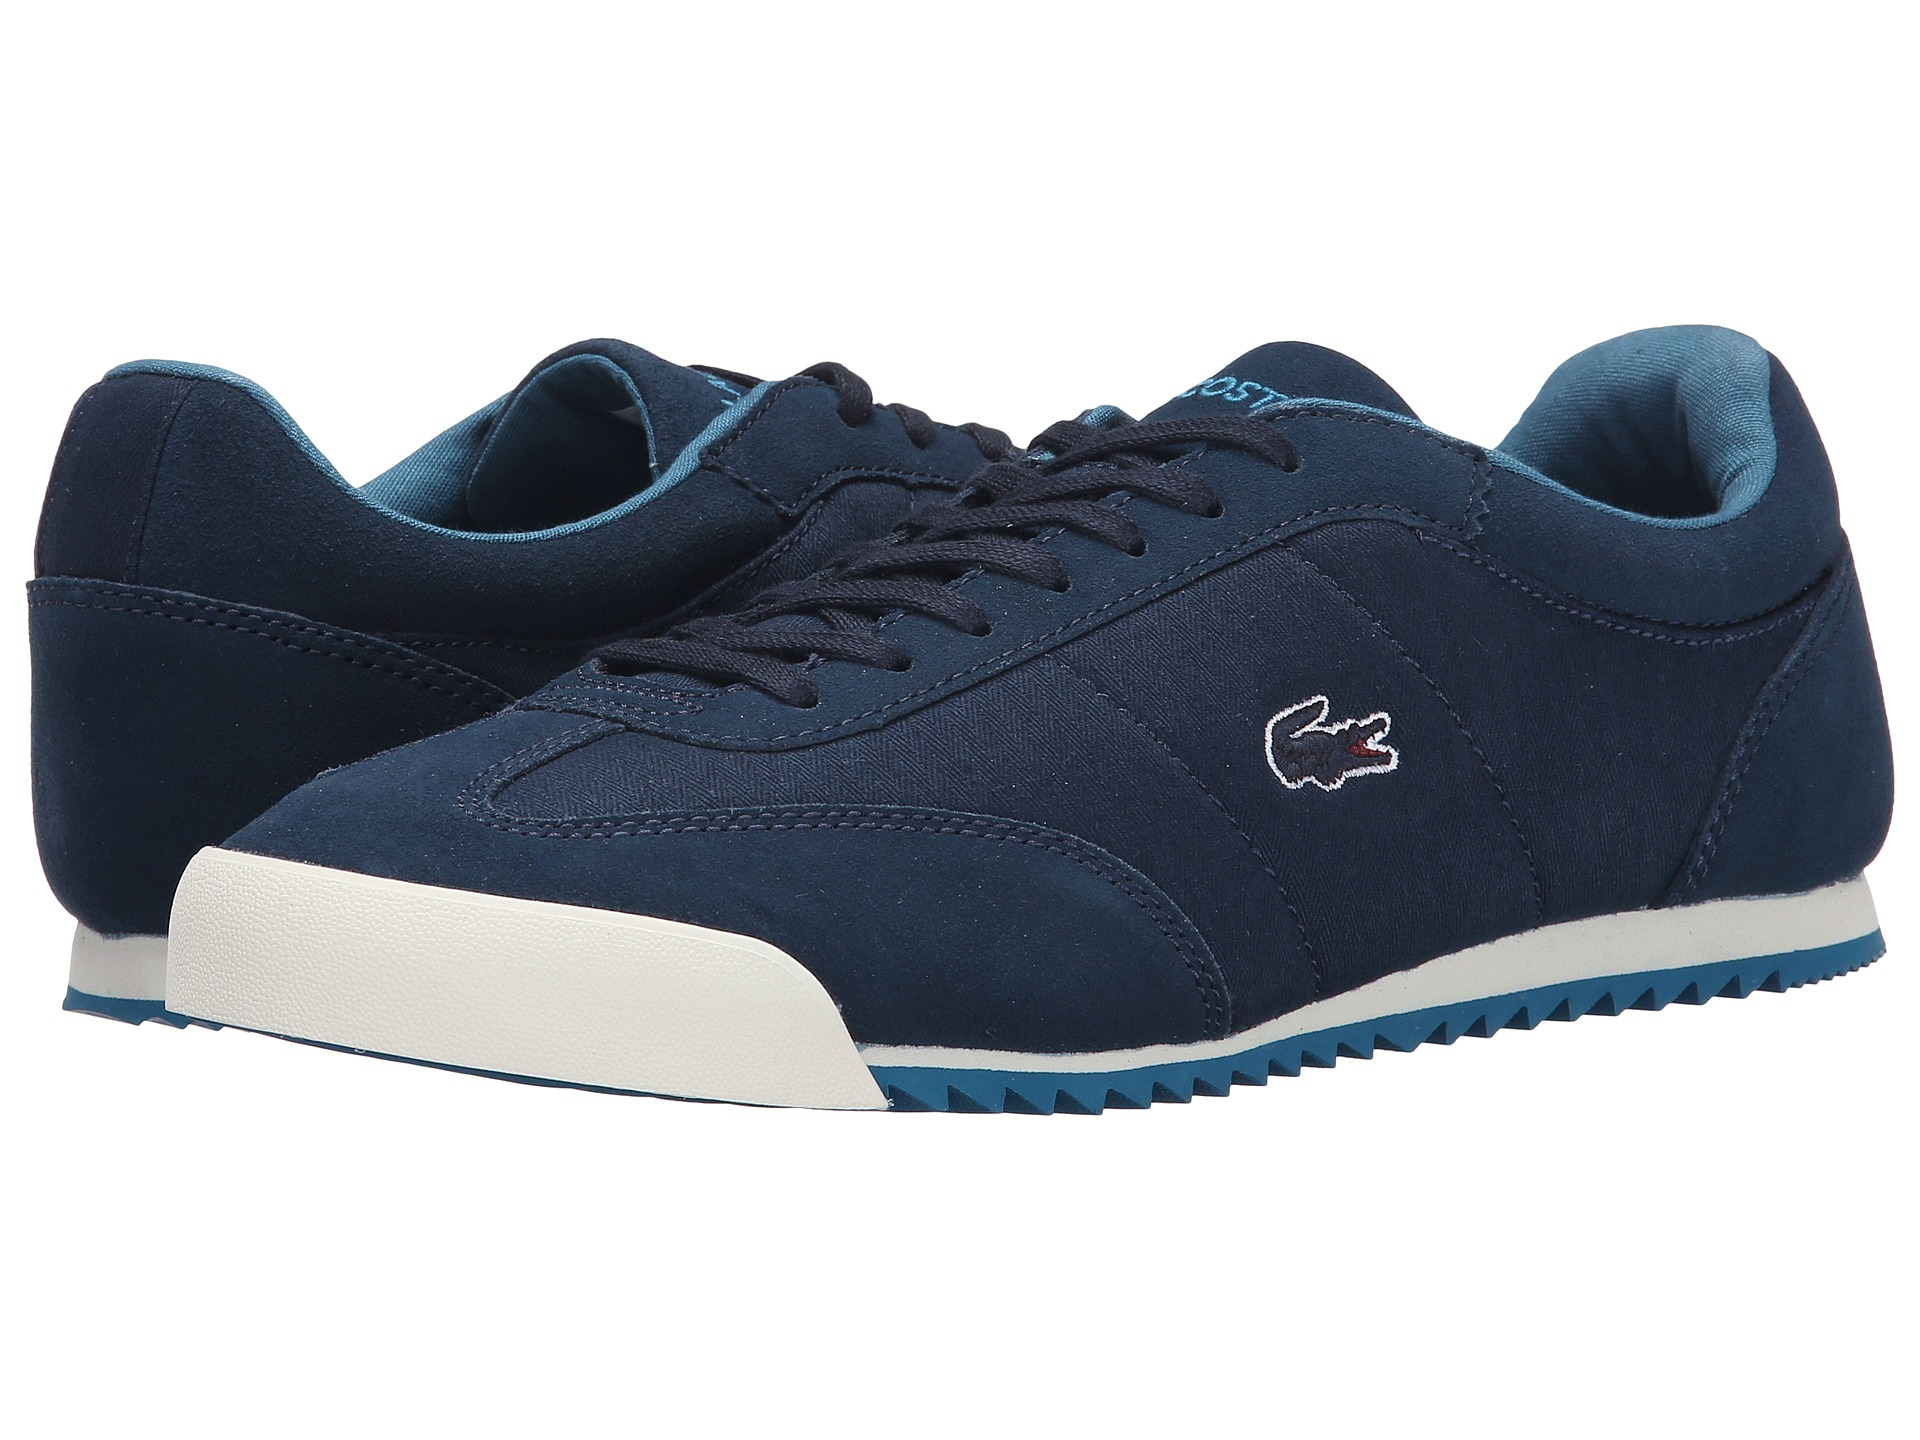 1c3a18f8c33dd Lyst - Lacoste Romeau Fpm in Blue for Men